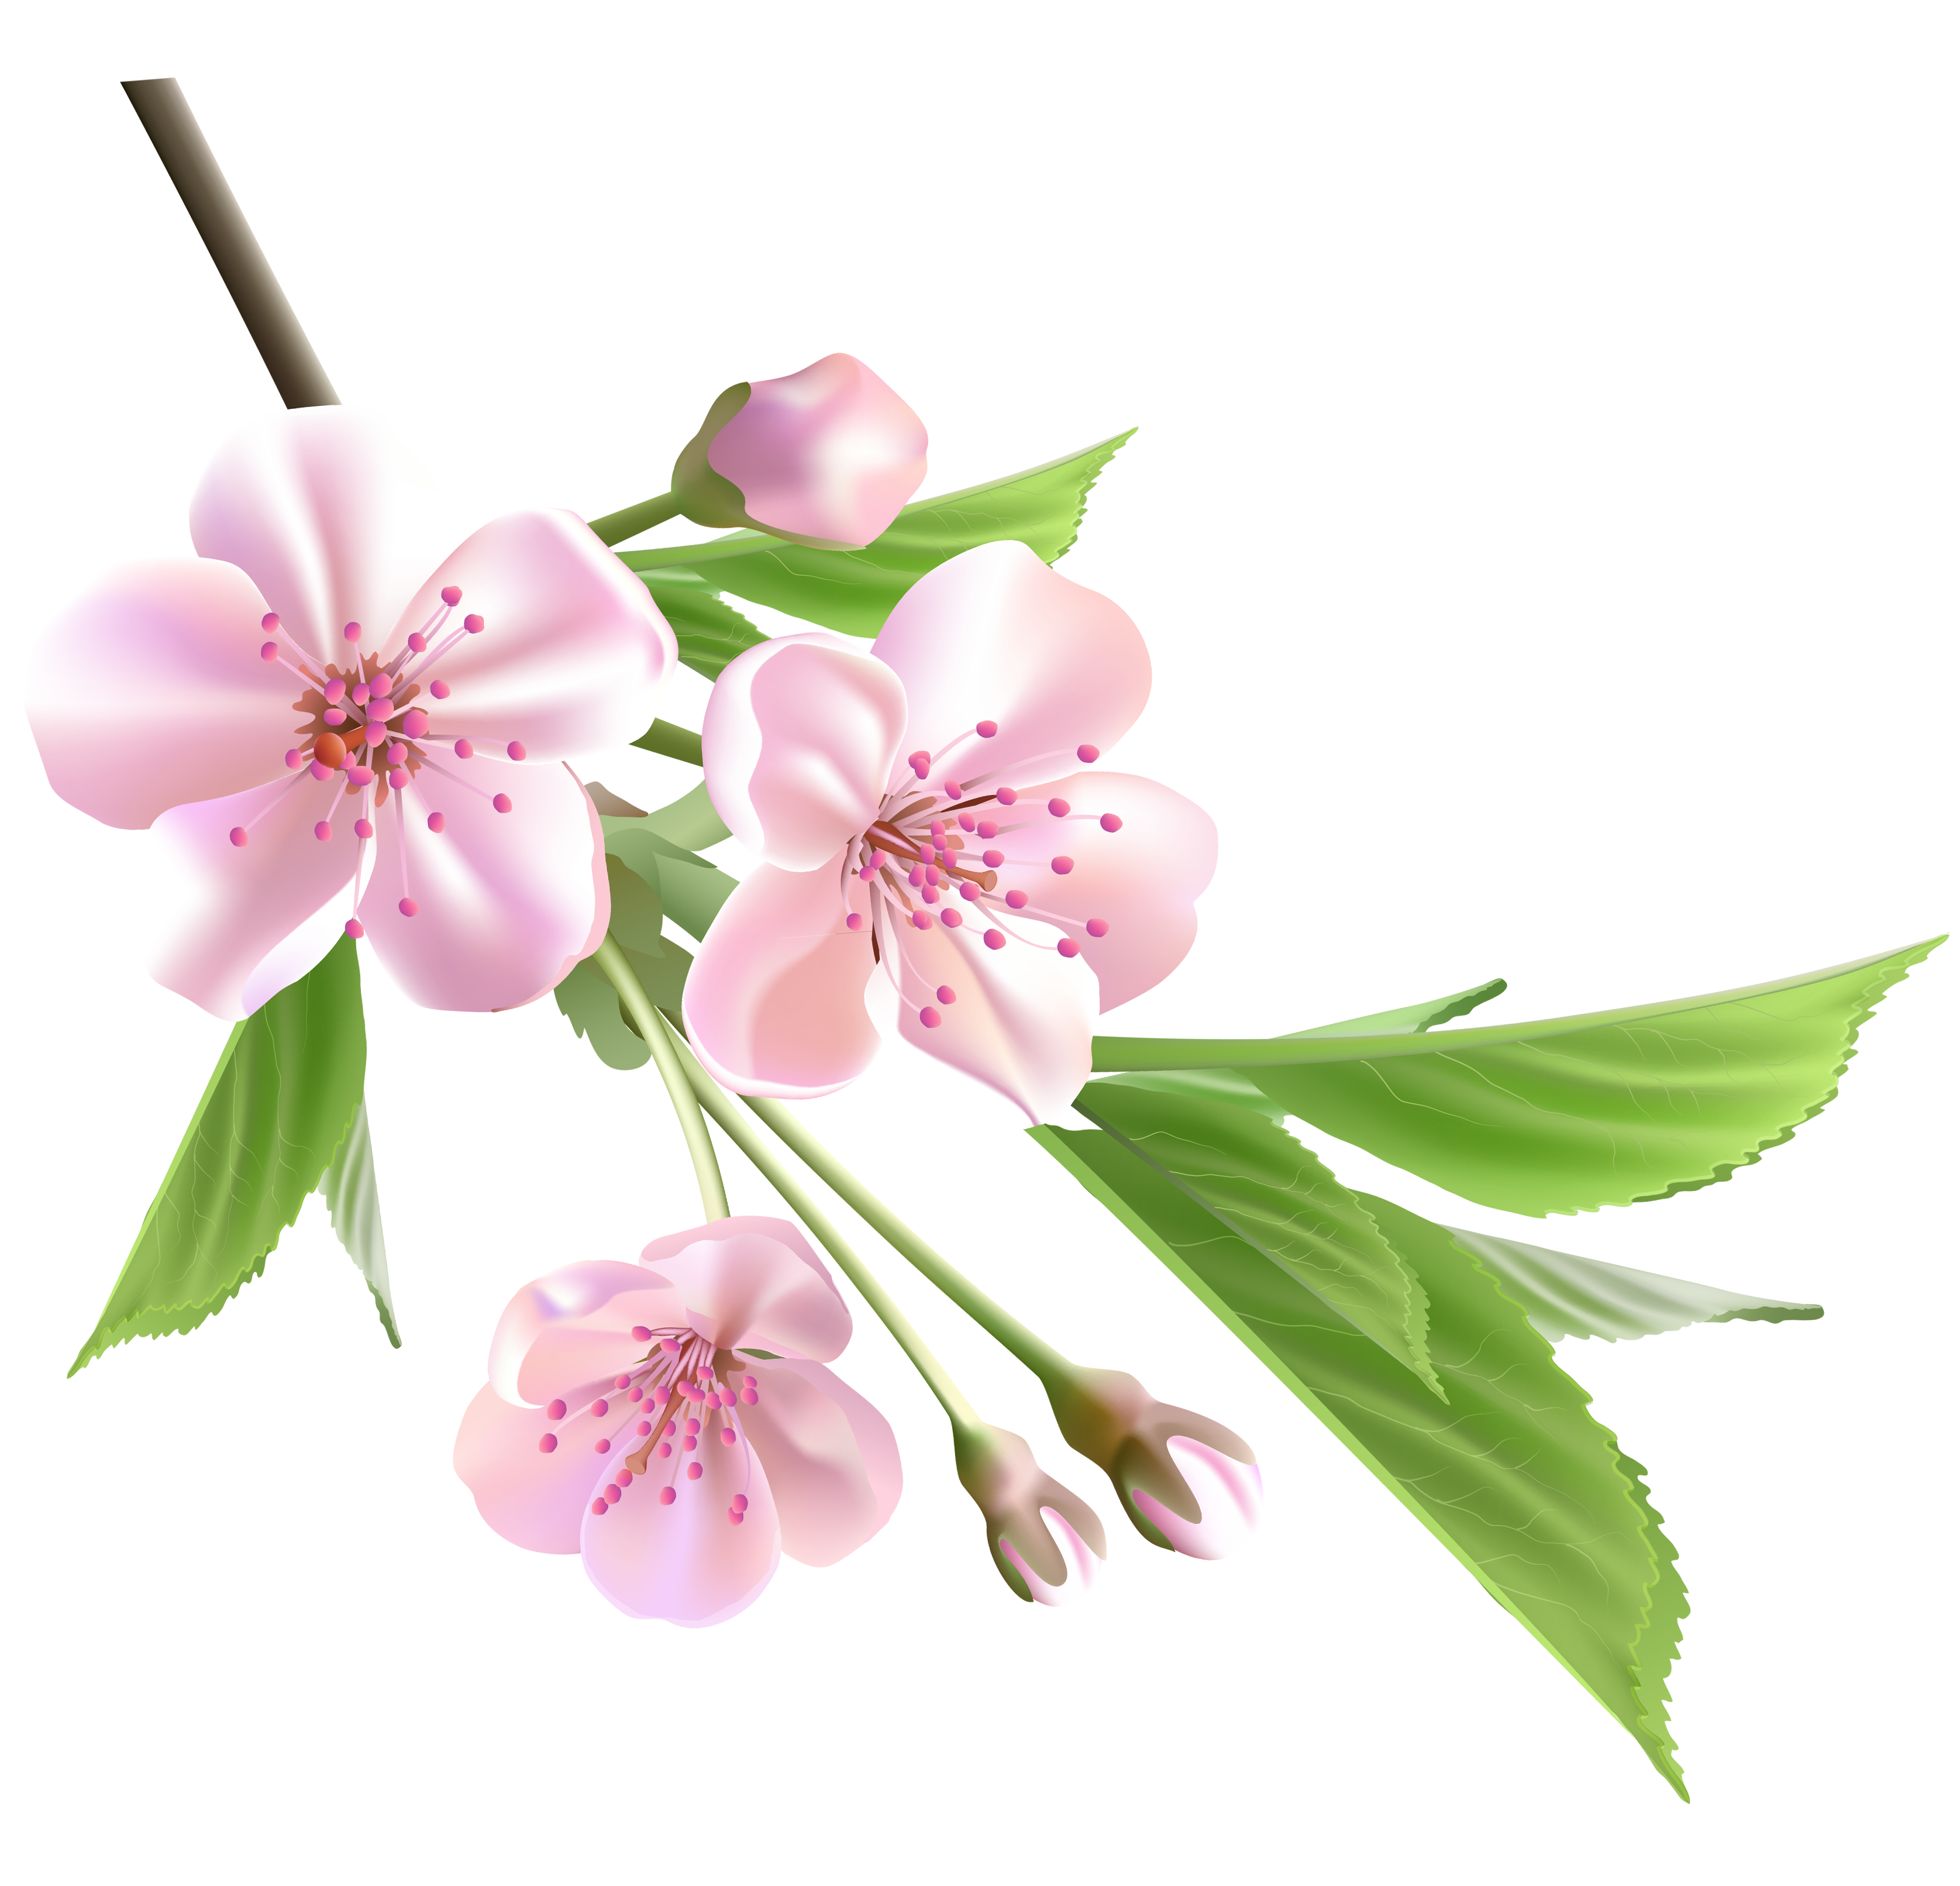 Flower tree clipart clip library Flower Drawing Tree Clip art - Spring Branch with Pink Tree Flowers ... clip library